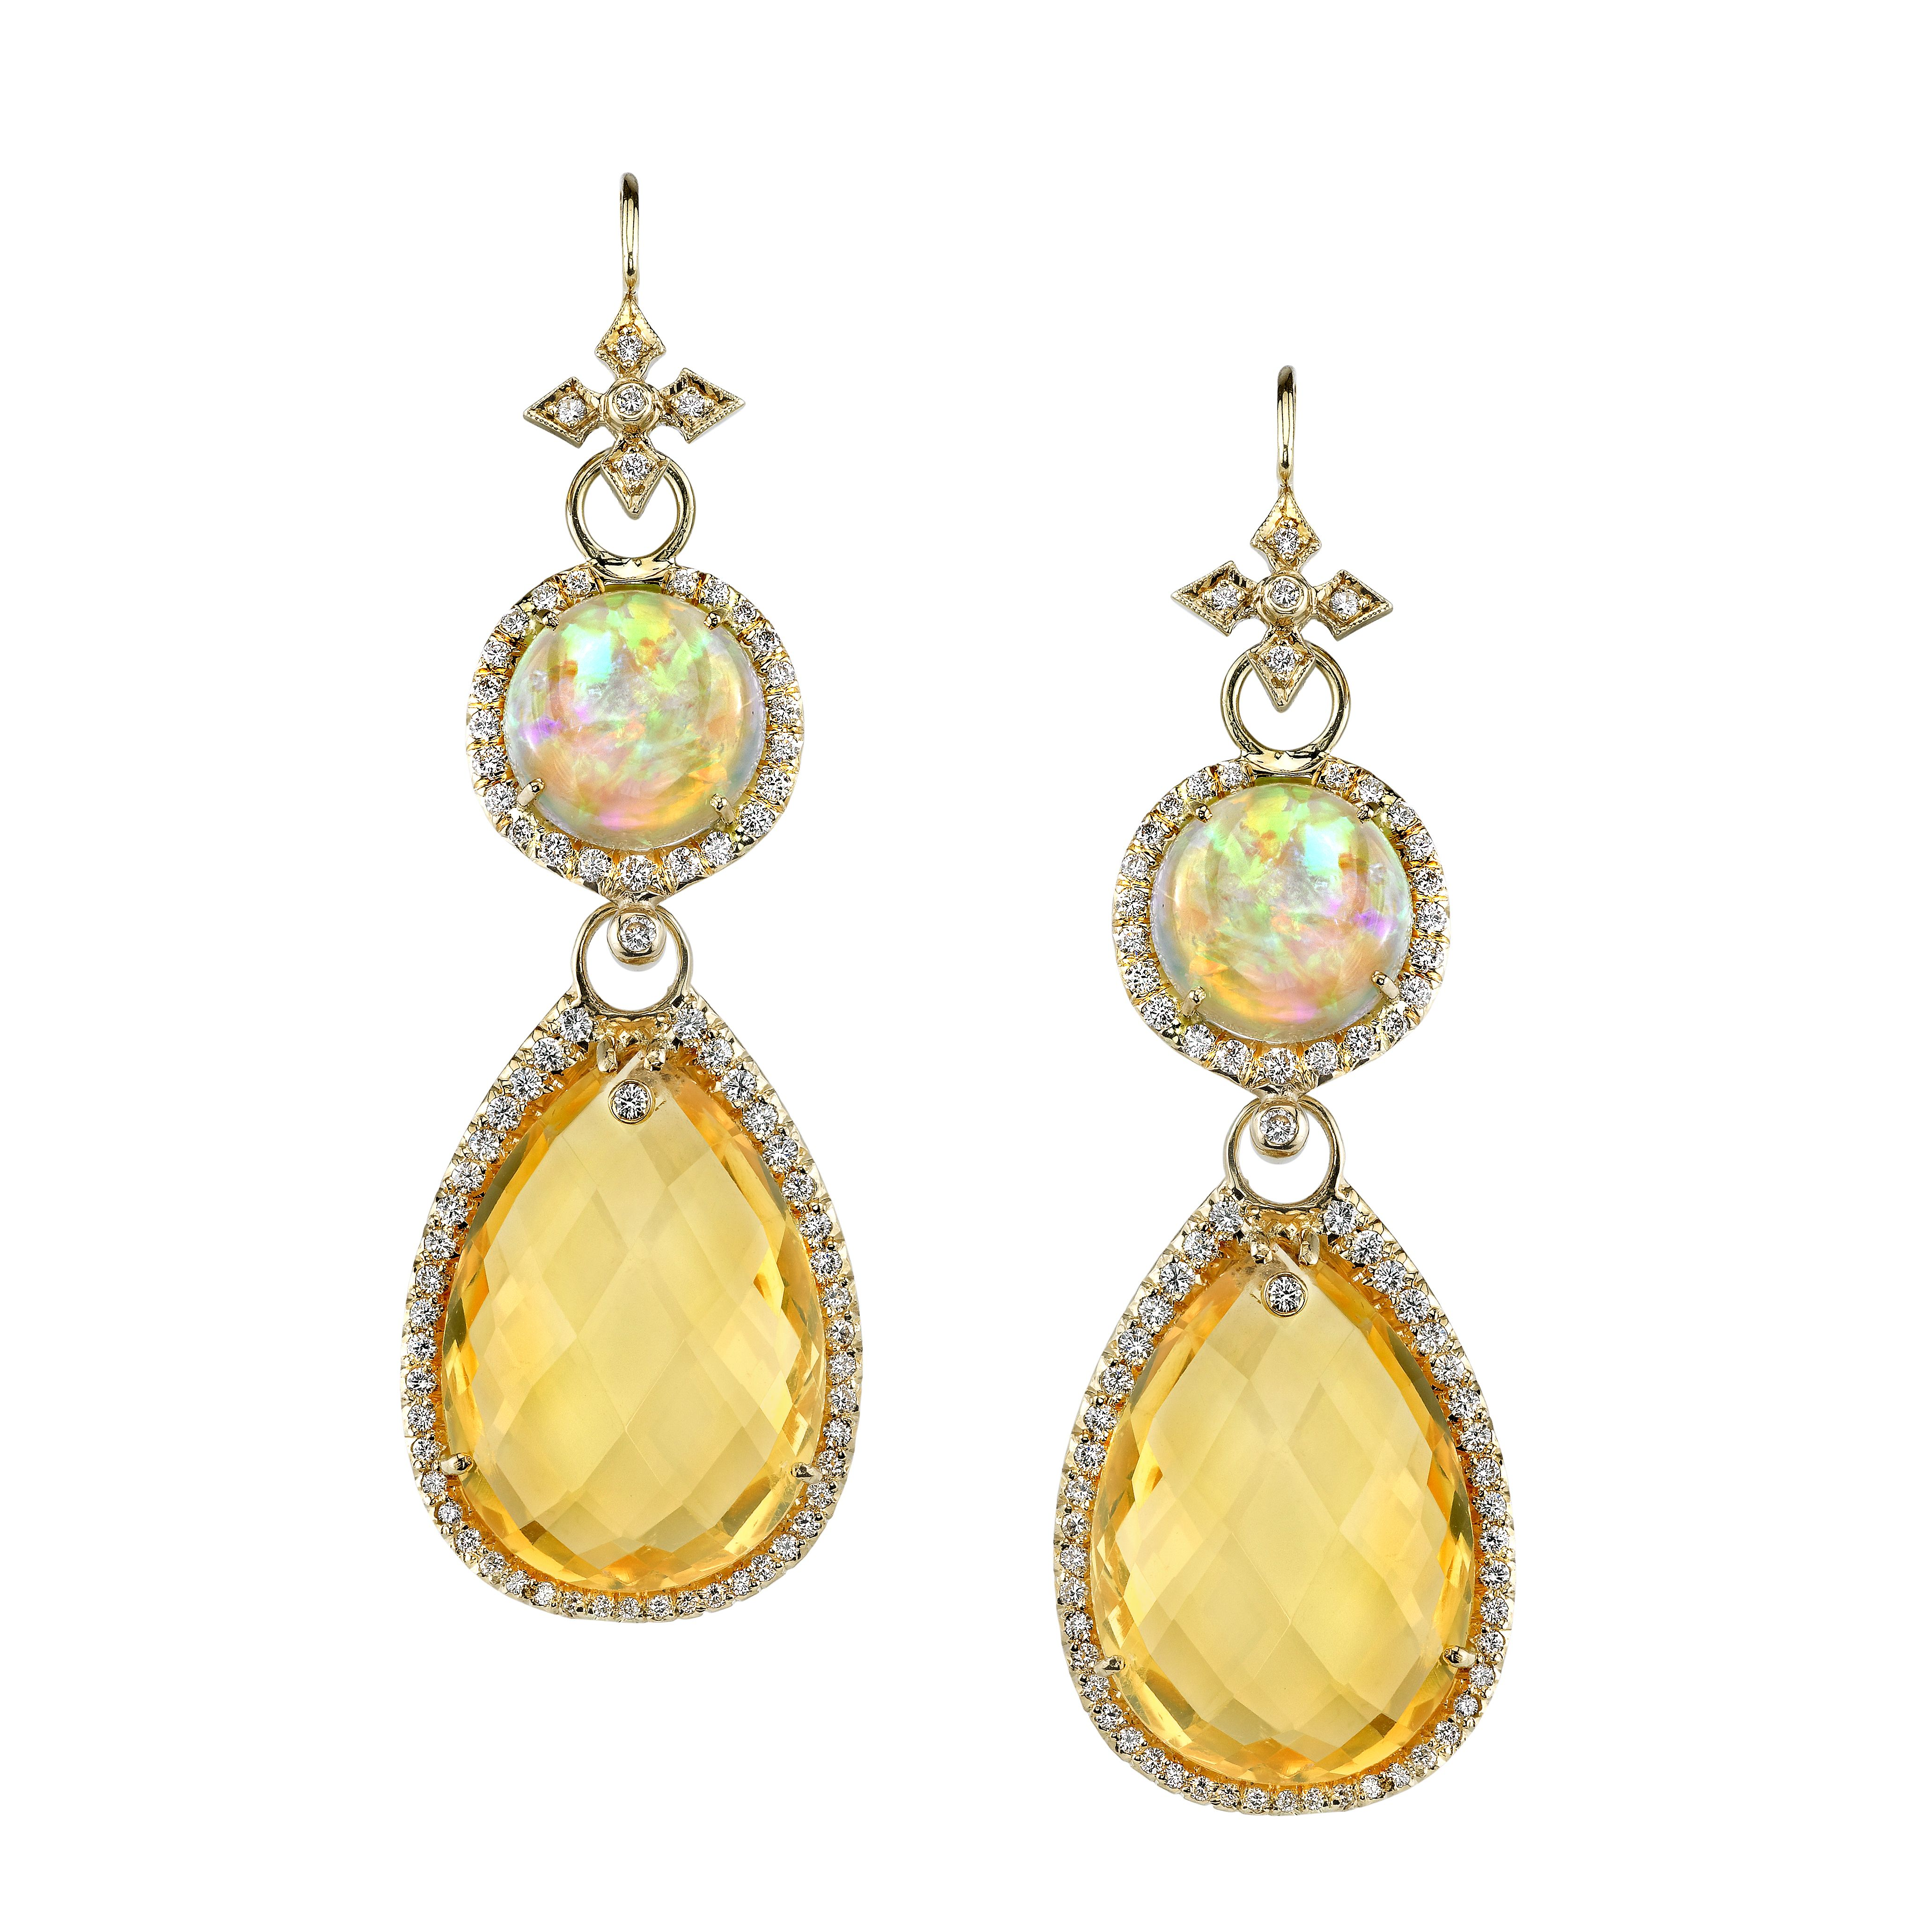 18k Gold and Diamond Opal Earrings by Erica Courtney®